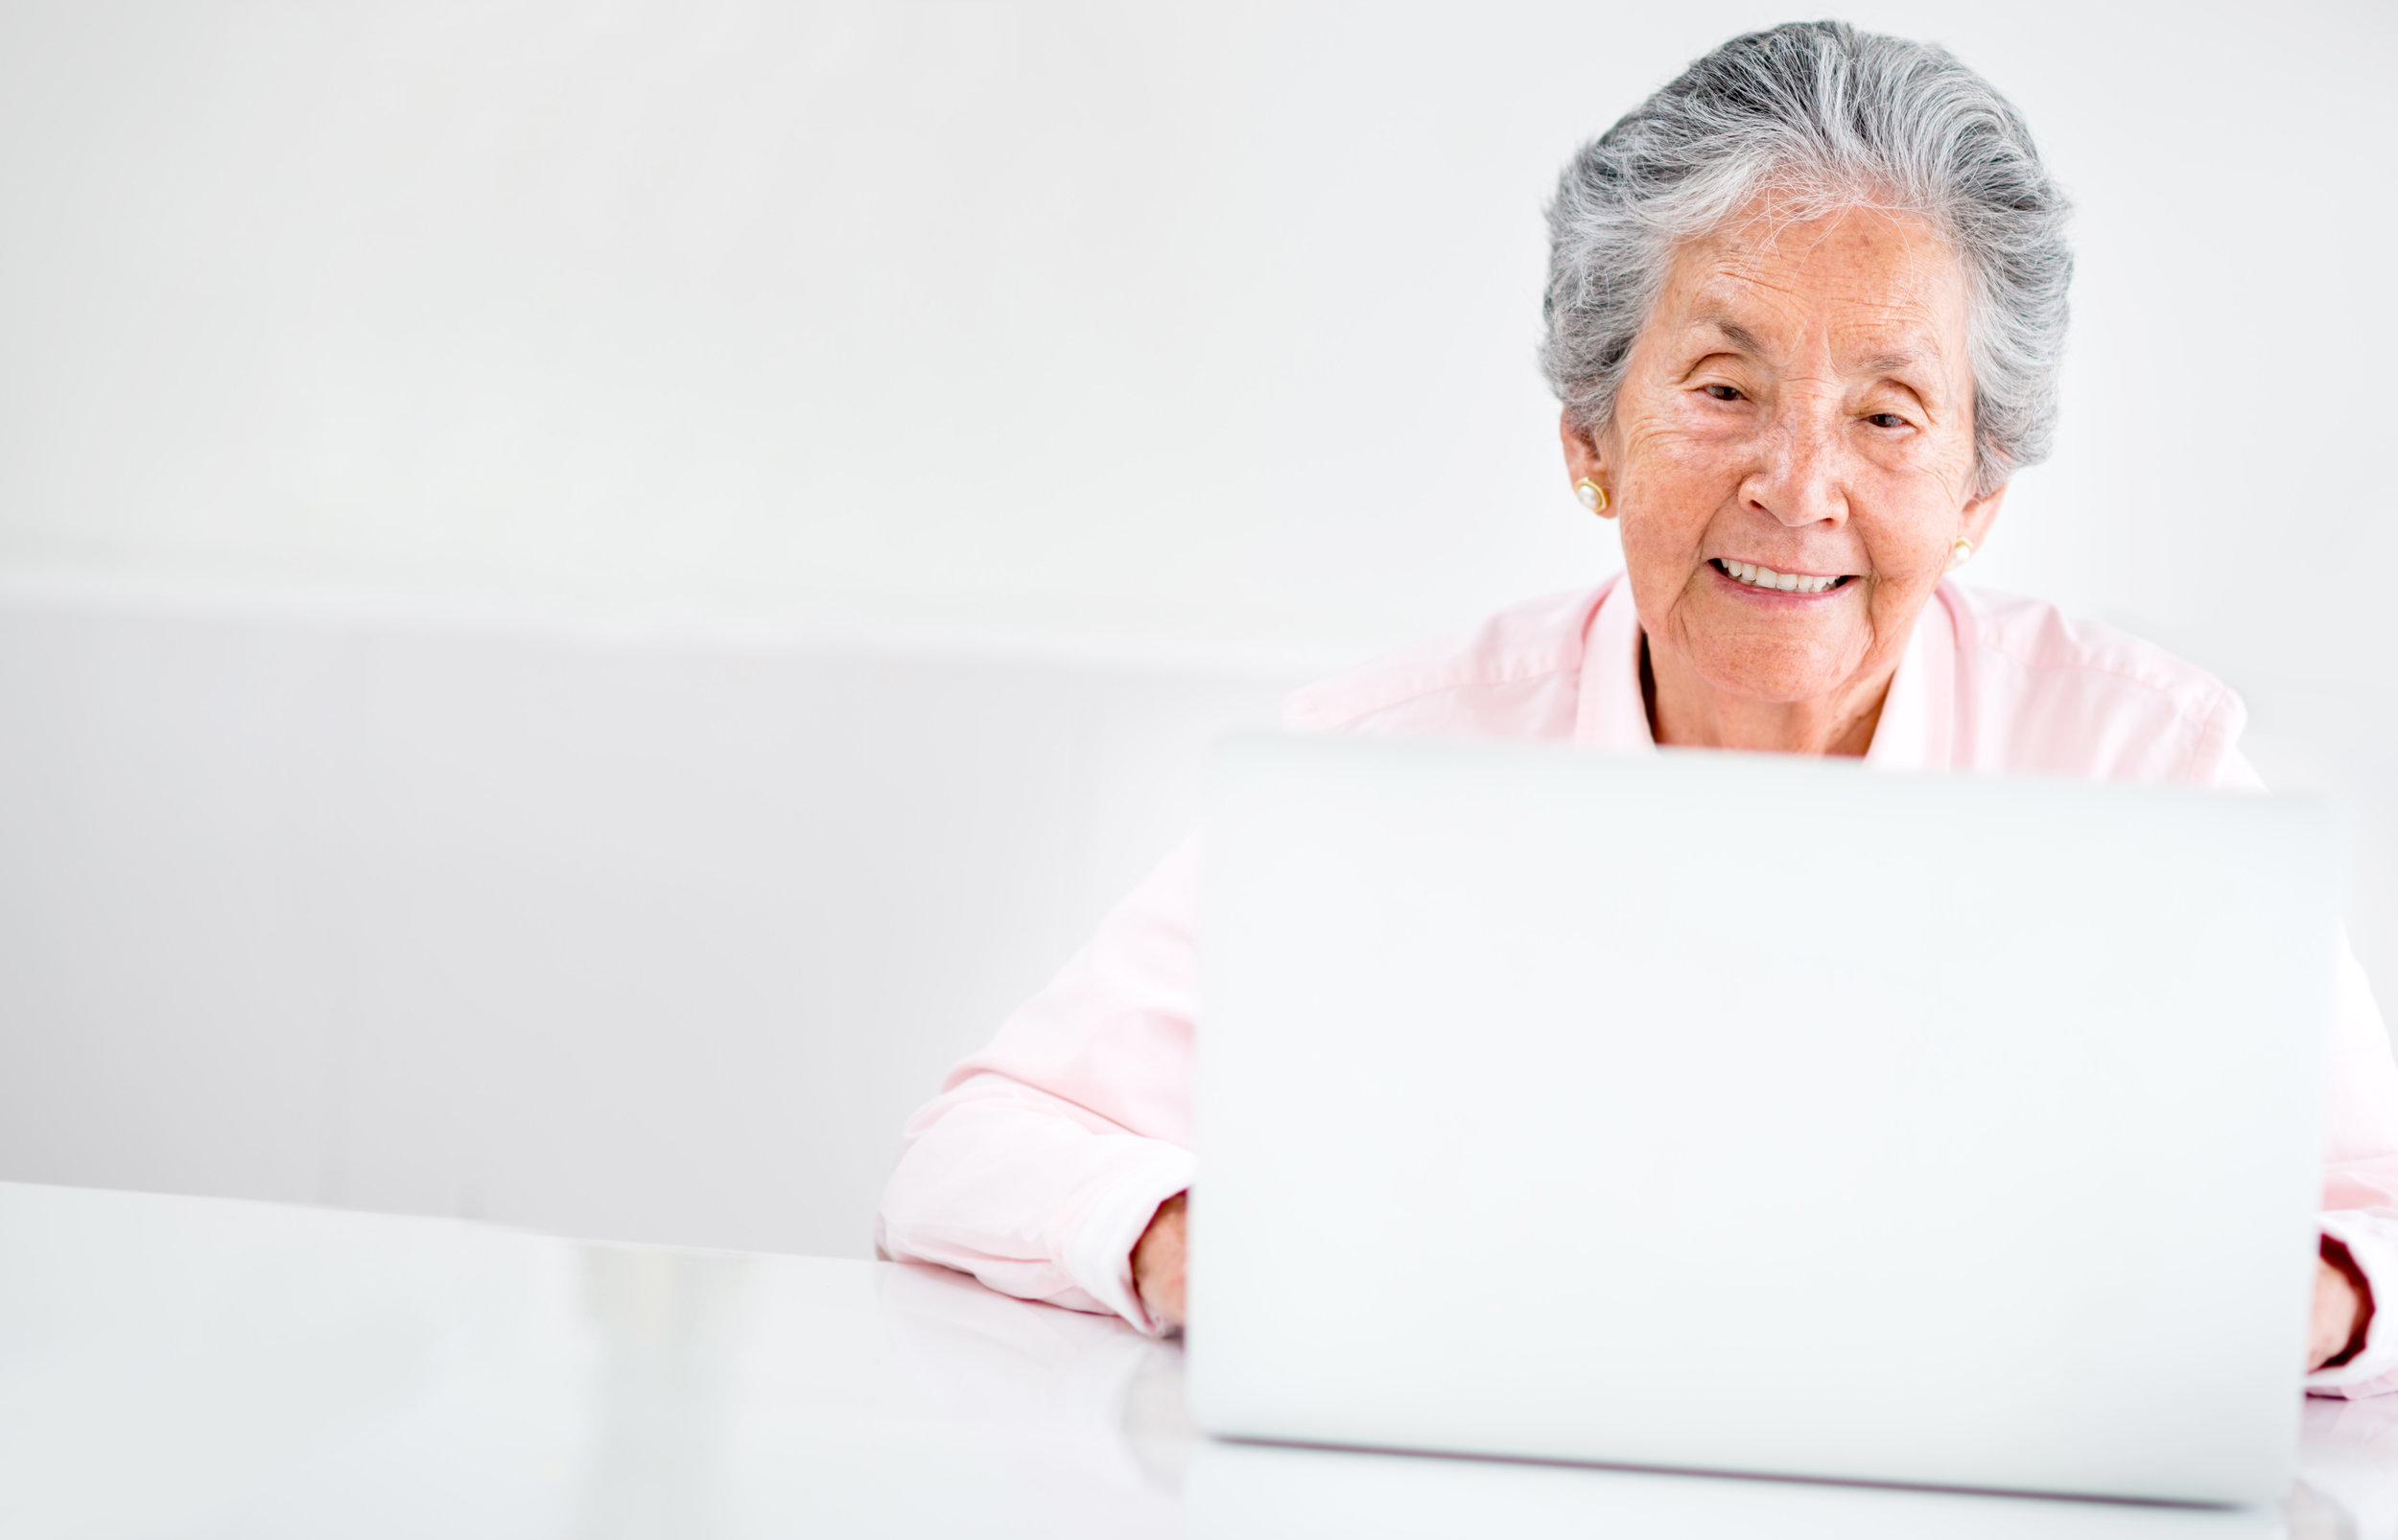 Retirees often lose access to their enterprise account, but still need access to services. Cirrus solutions allow organizations to link retiree accounts to an externally hosted credential. In this photo, a retired woman logs in using a computer.